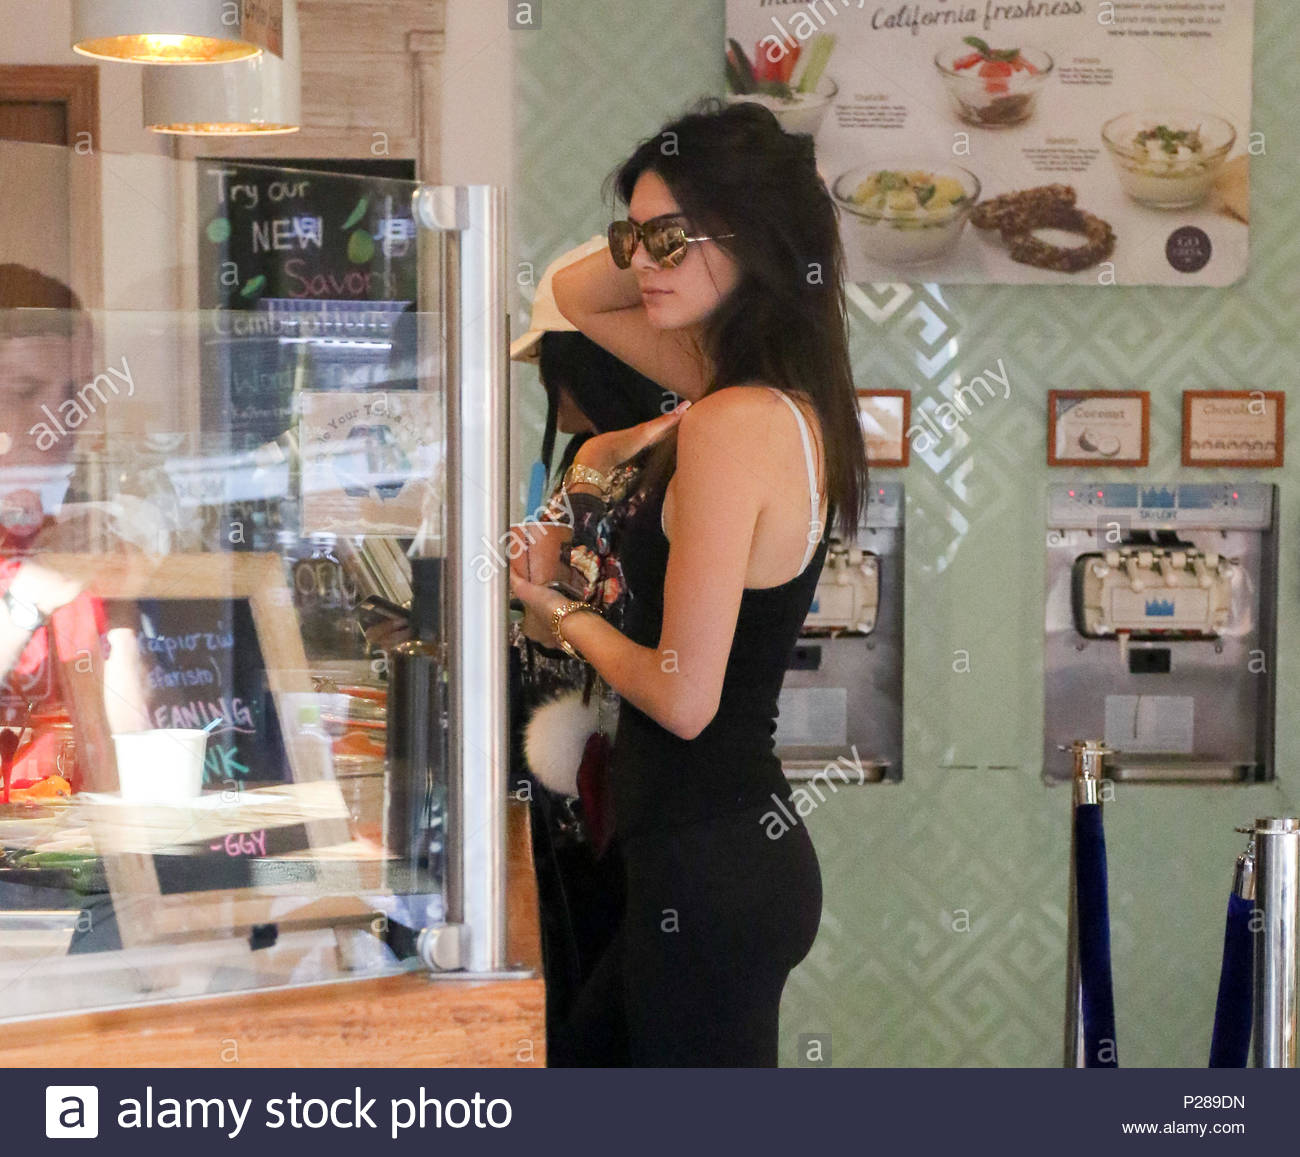 Kendall jenner kylie jenner kendall and kylie jenner meet up for kendall jenner kylie jenner kendall and kylie jenner meet up for dessert at go greek yogurt in beverly hills kylie was also seen shopping at agent m4hsunfo